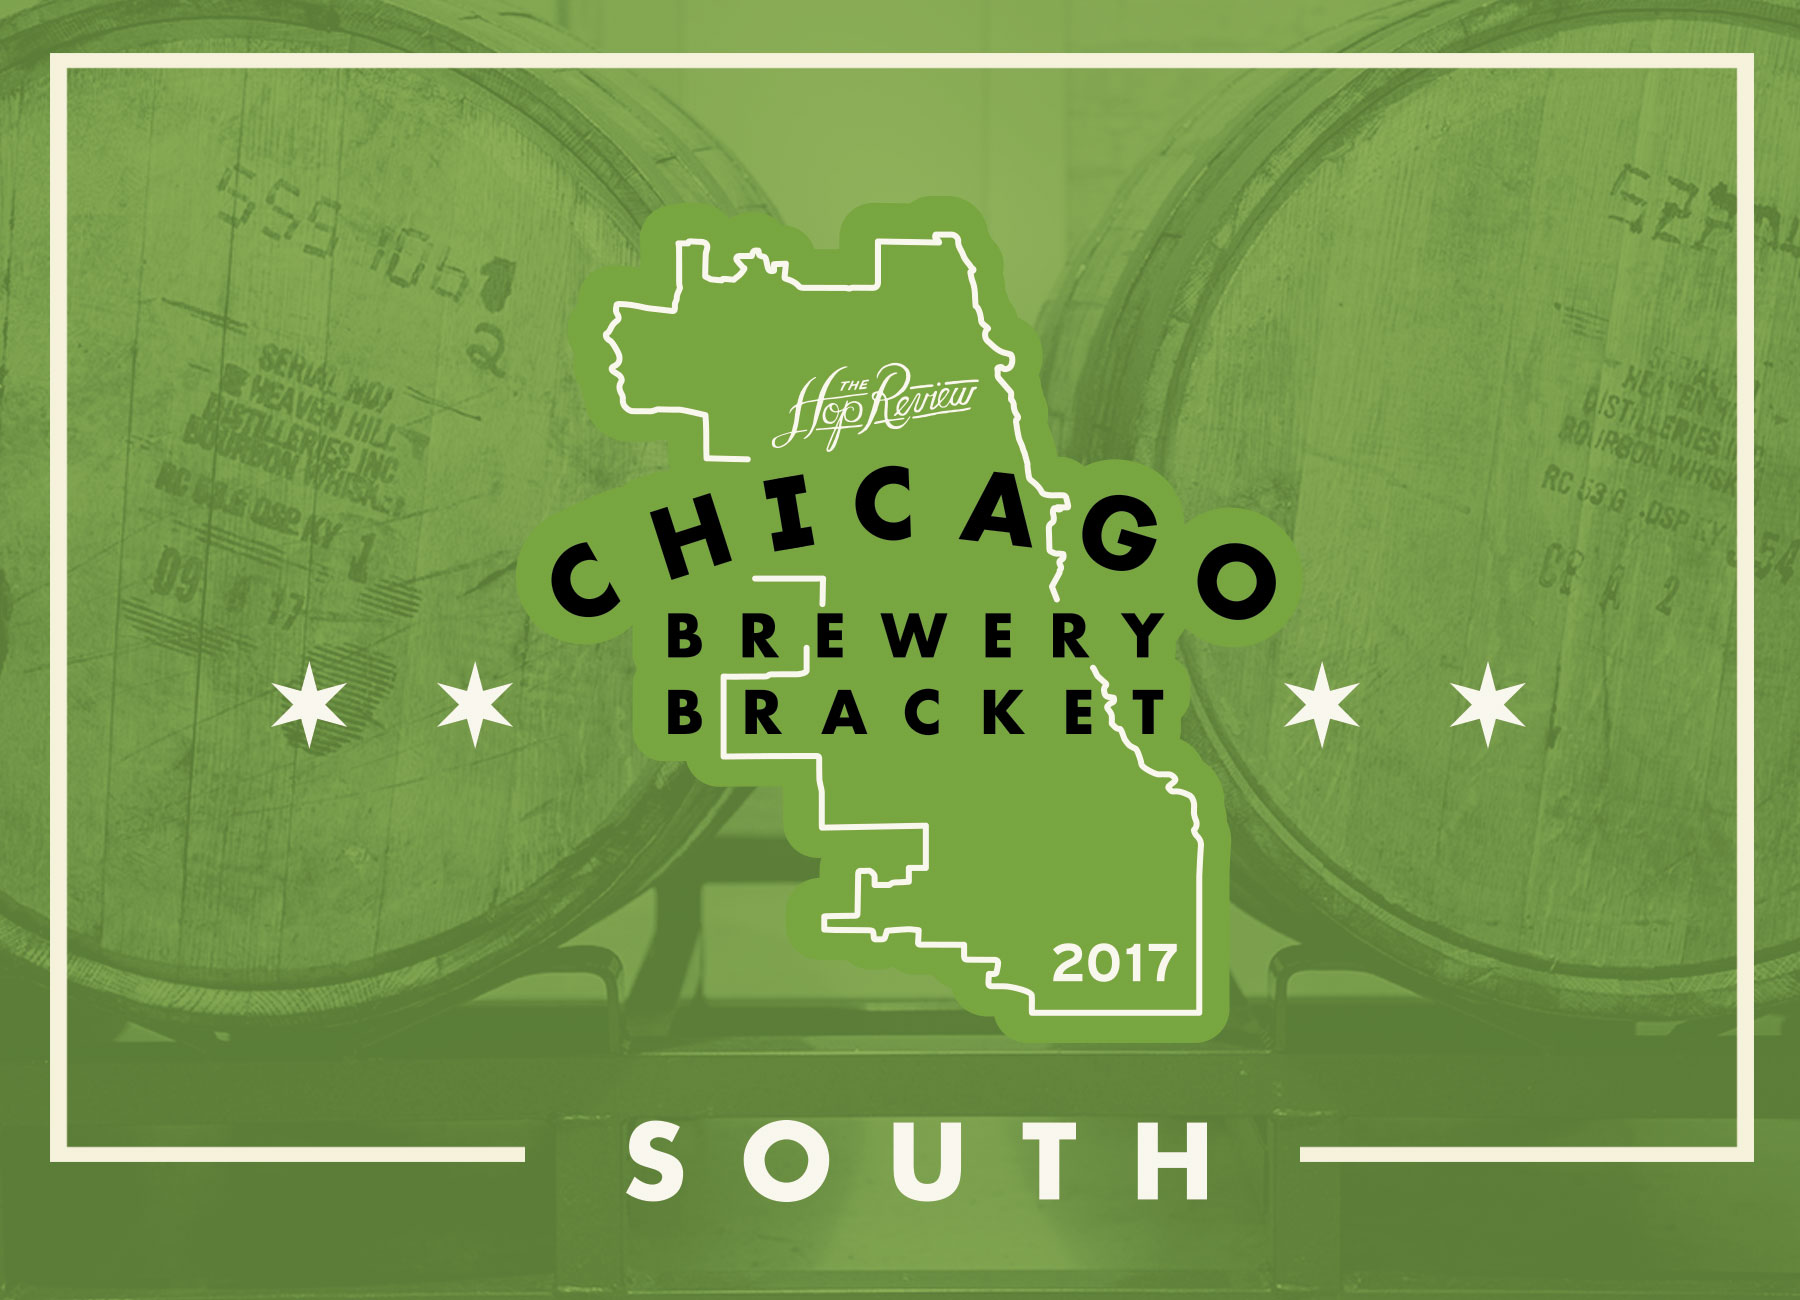 Chicago Brewery Bracket: South – Rd. 1